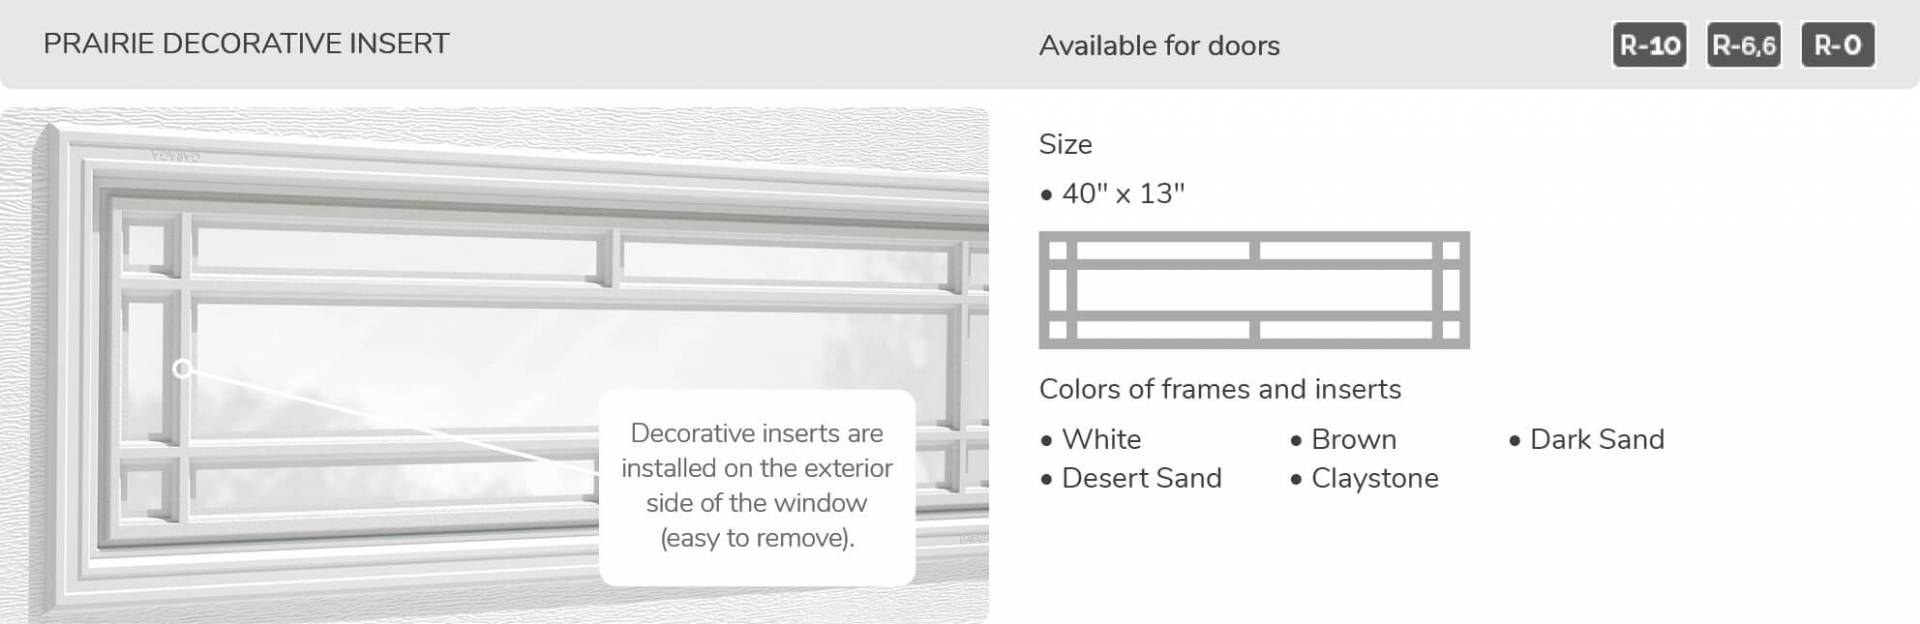 "Prairie Decorative Insert, 40"" x 13"", available for doors R-10, R-6.6, R-0"